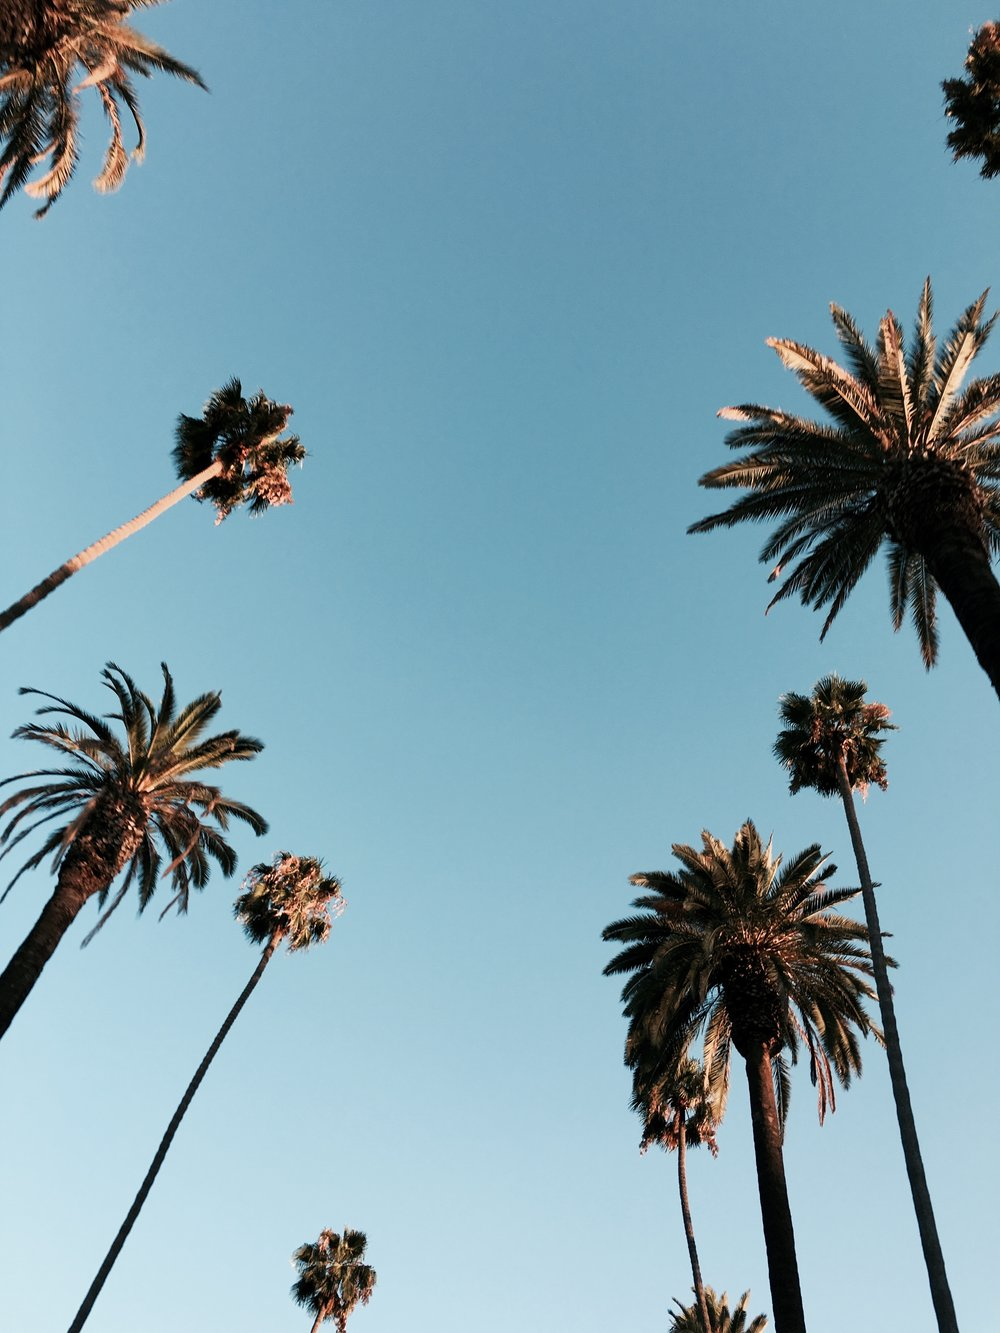 Beverly Hills and palms